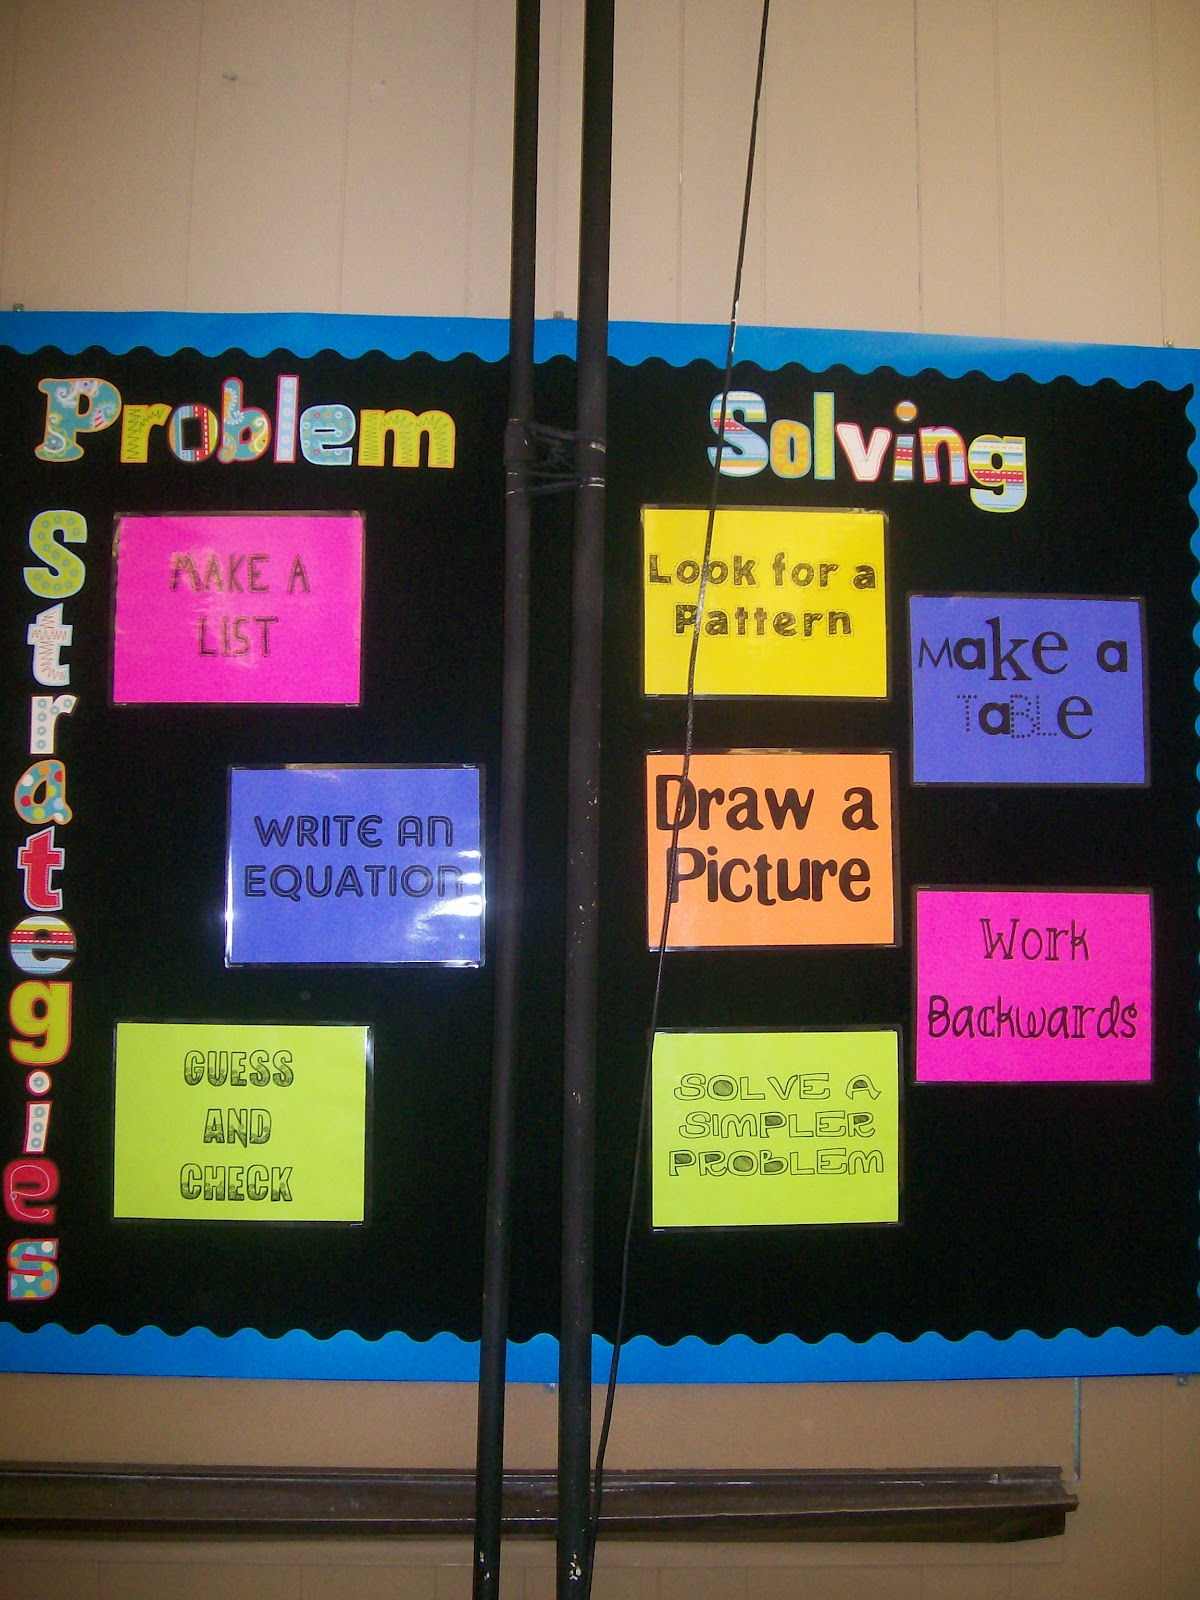 Math love drawing pictures reflections on problem solving for Art classroom decoration ideas